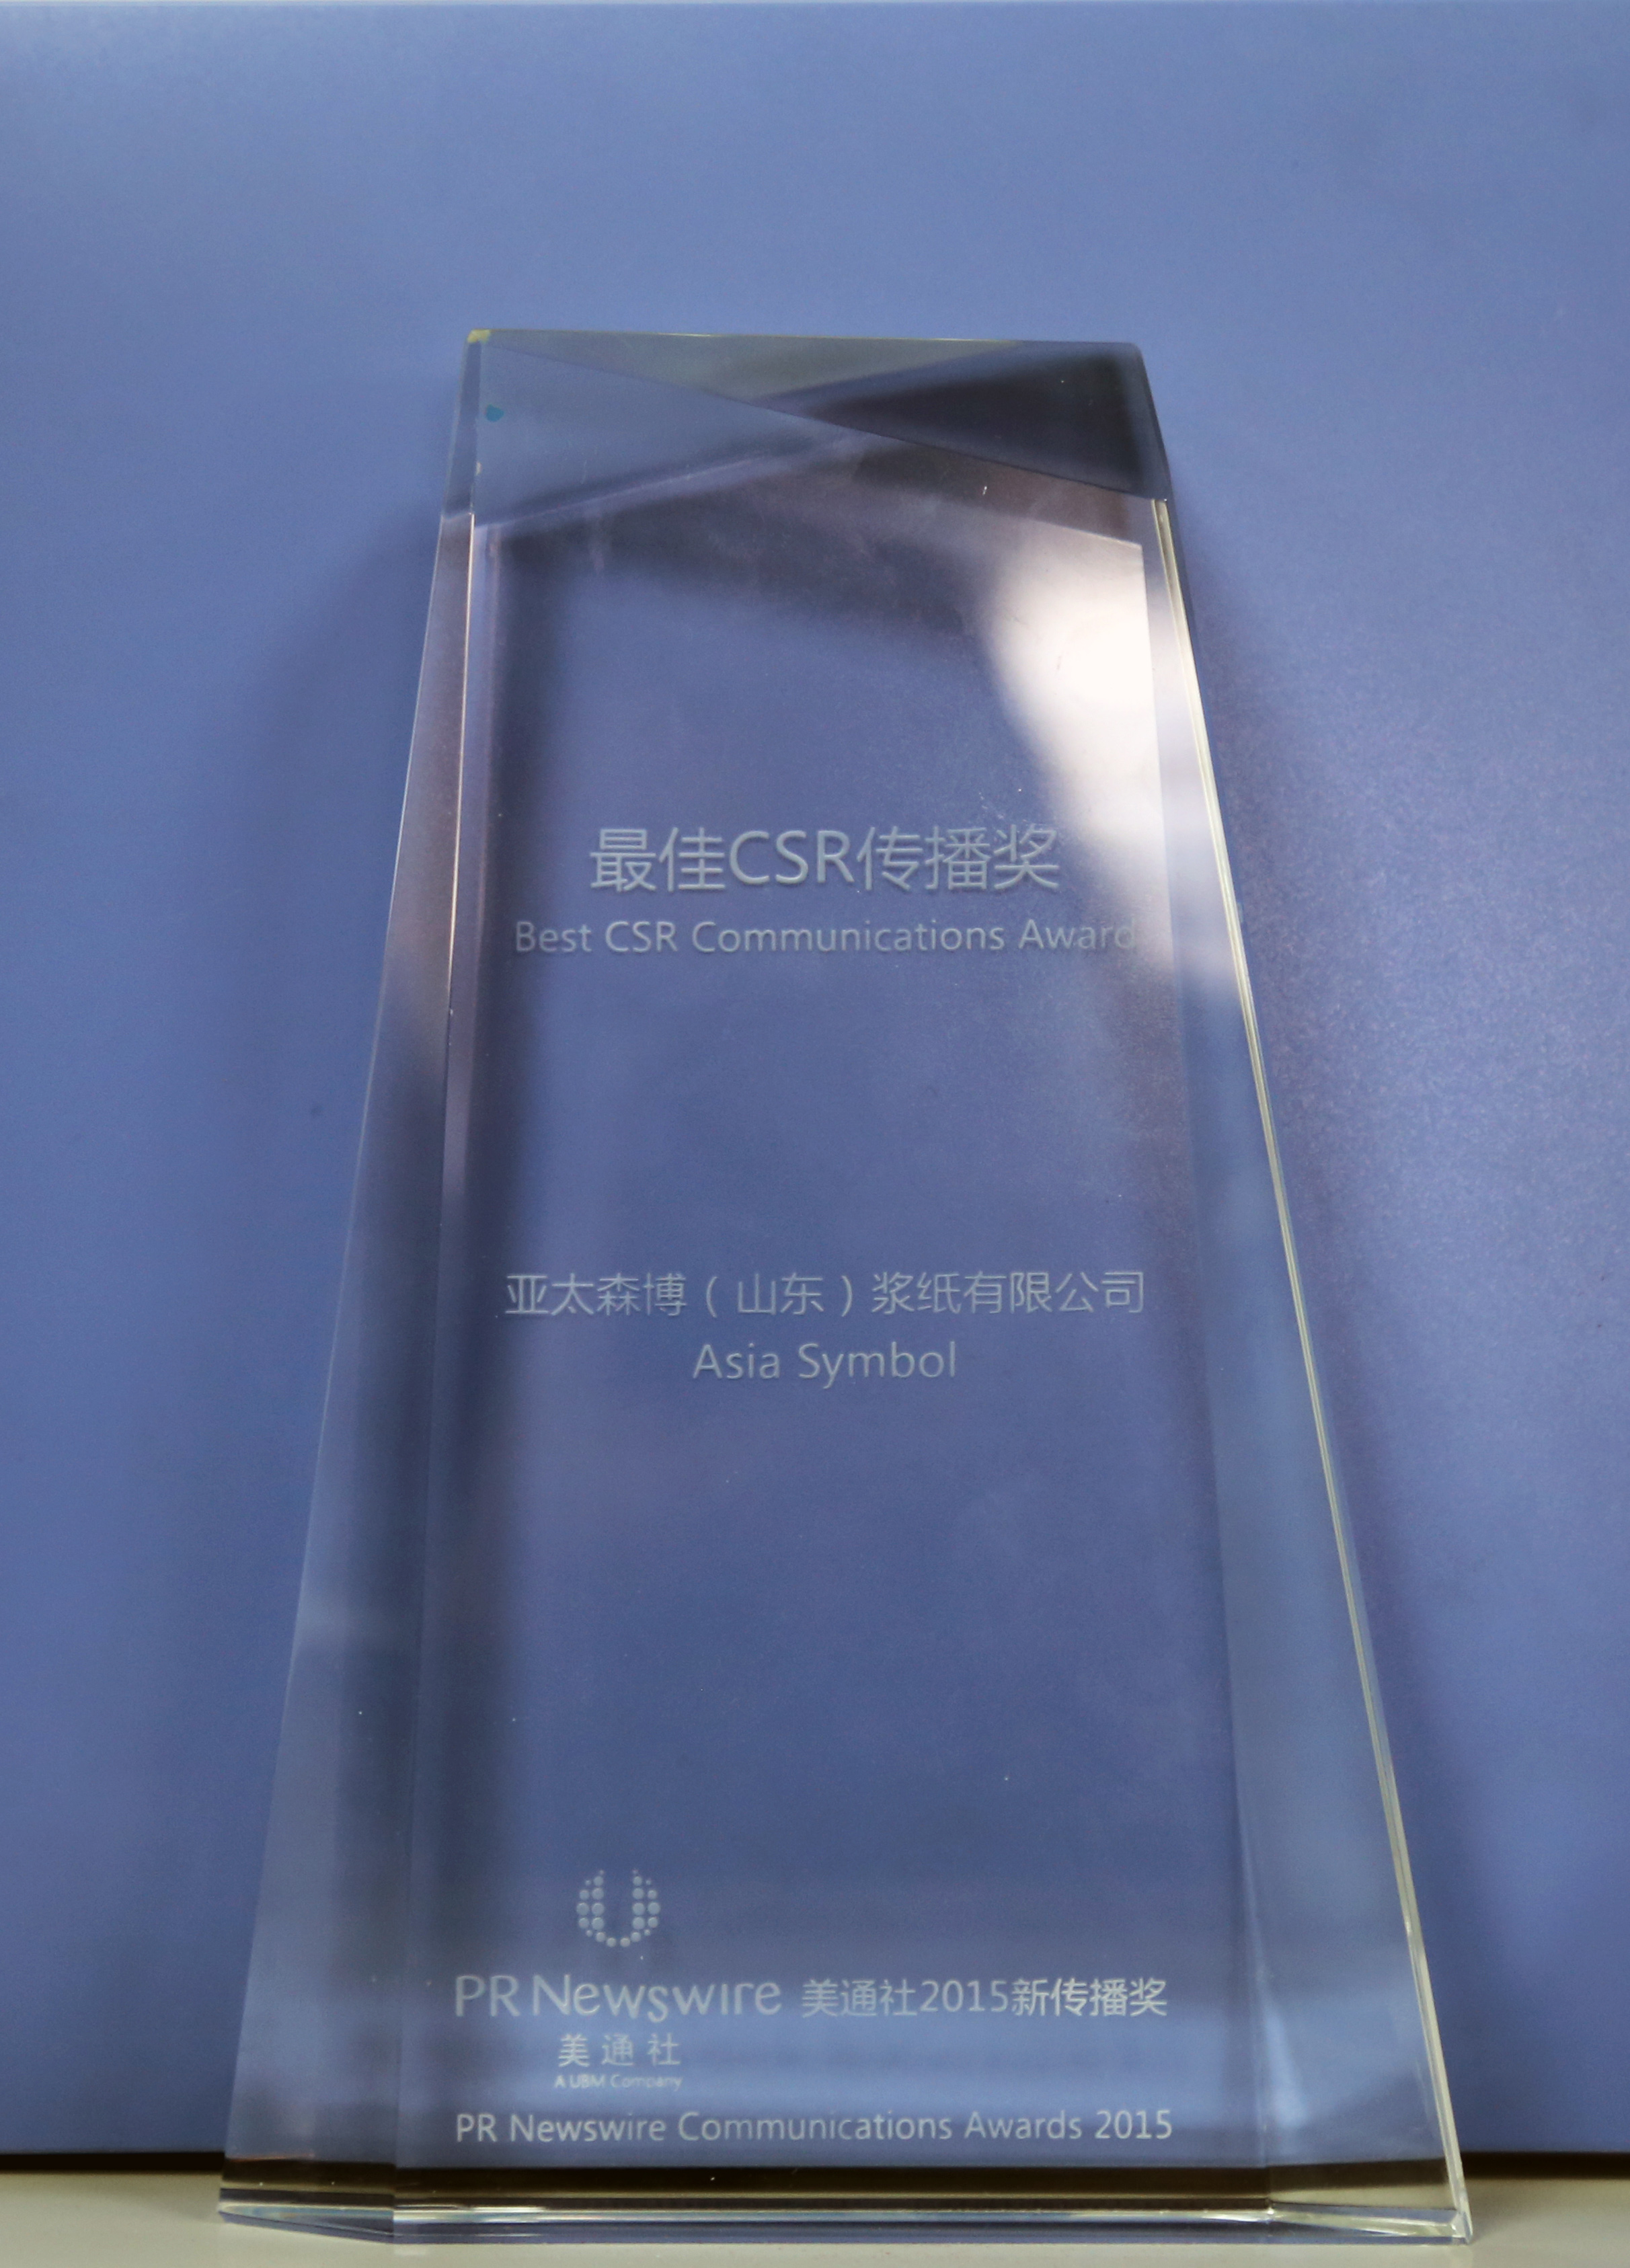 Asia Symbol picked up the PR Newswire Best CSR Communications Award in November.